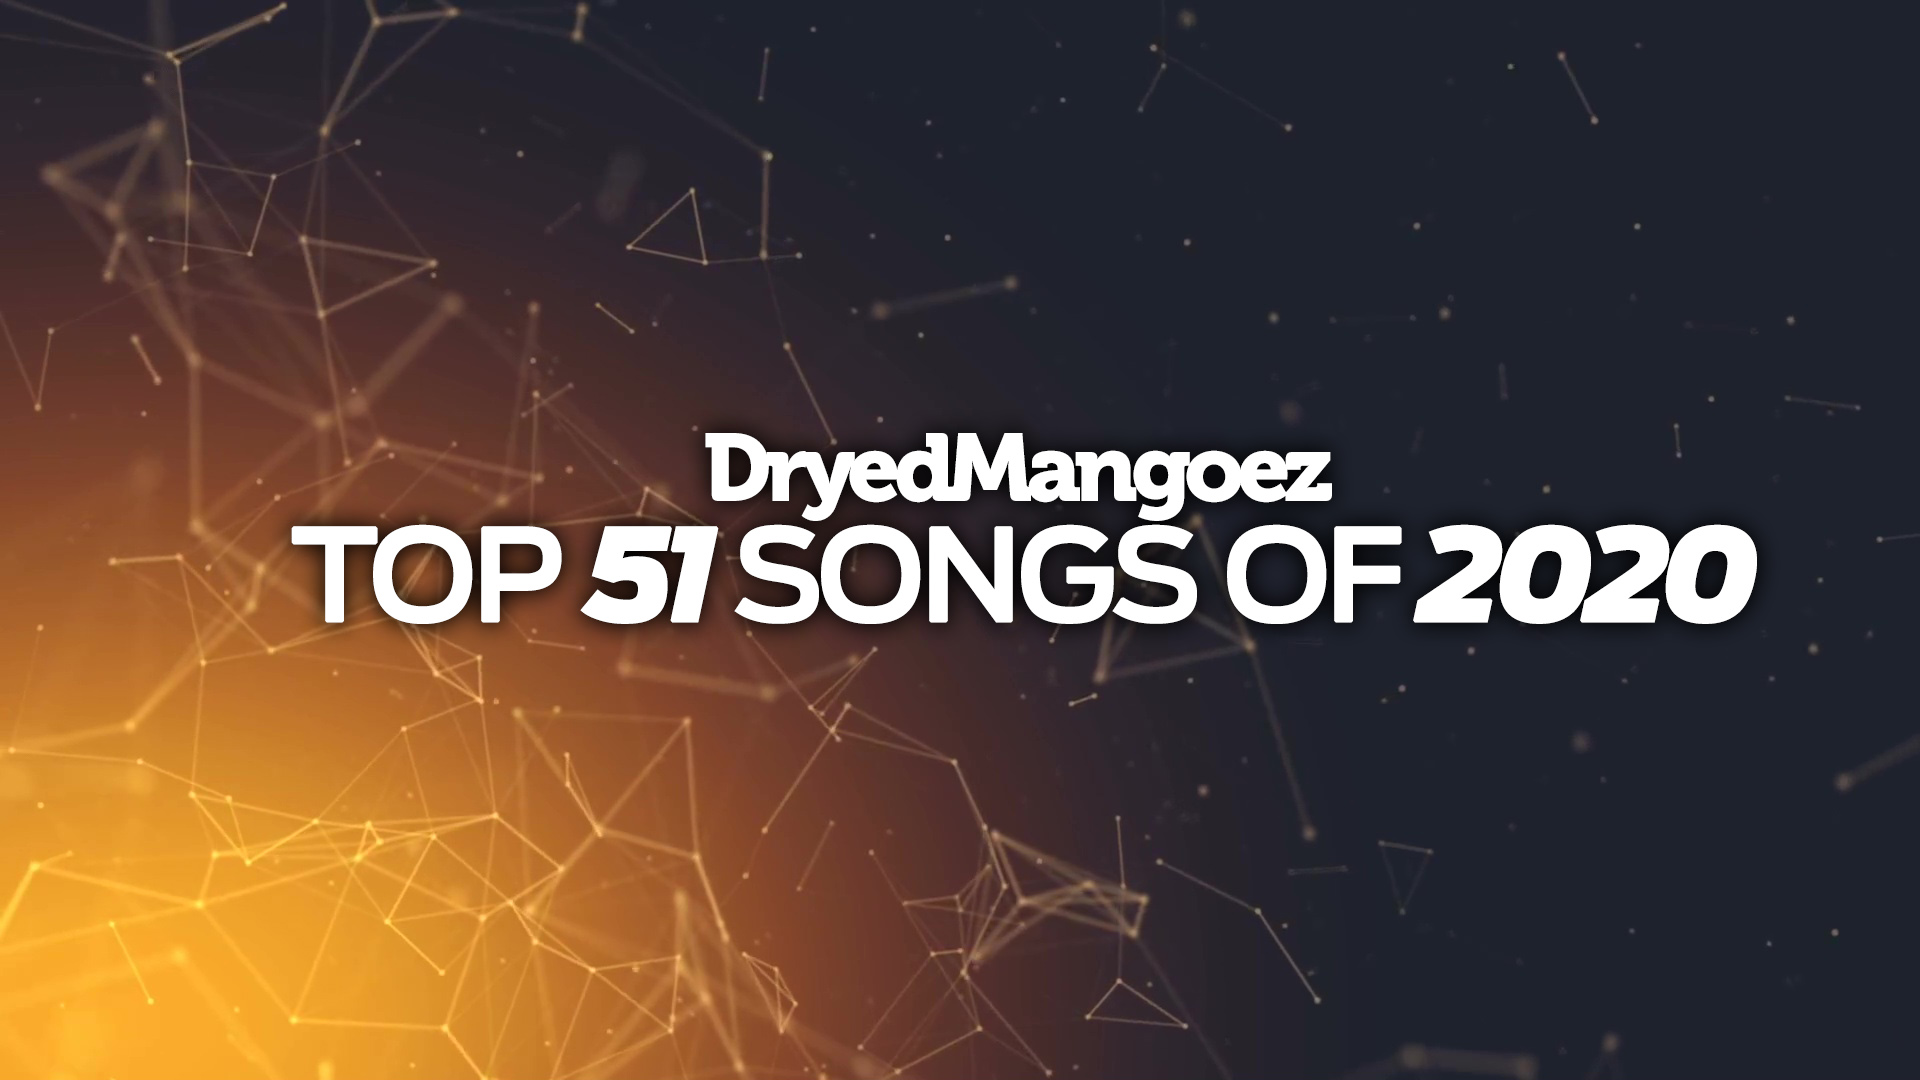 DryedMangoez Top 51 Songs of 2020 – My Favorite Songs of the Year!